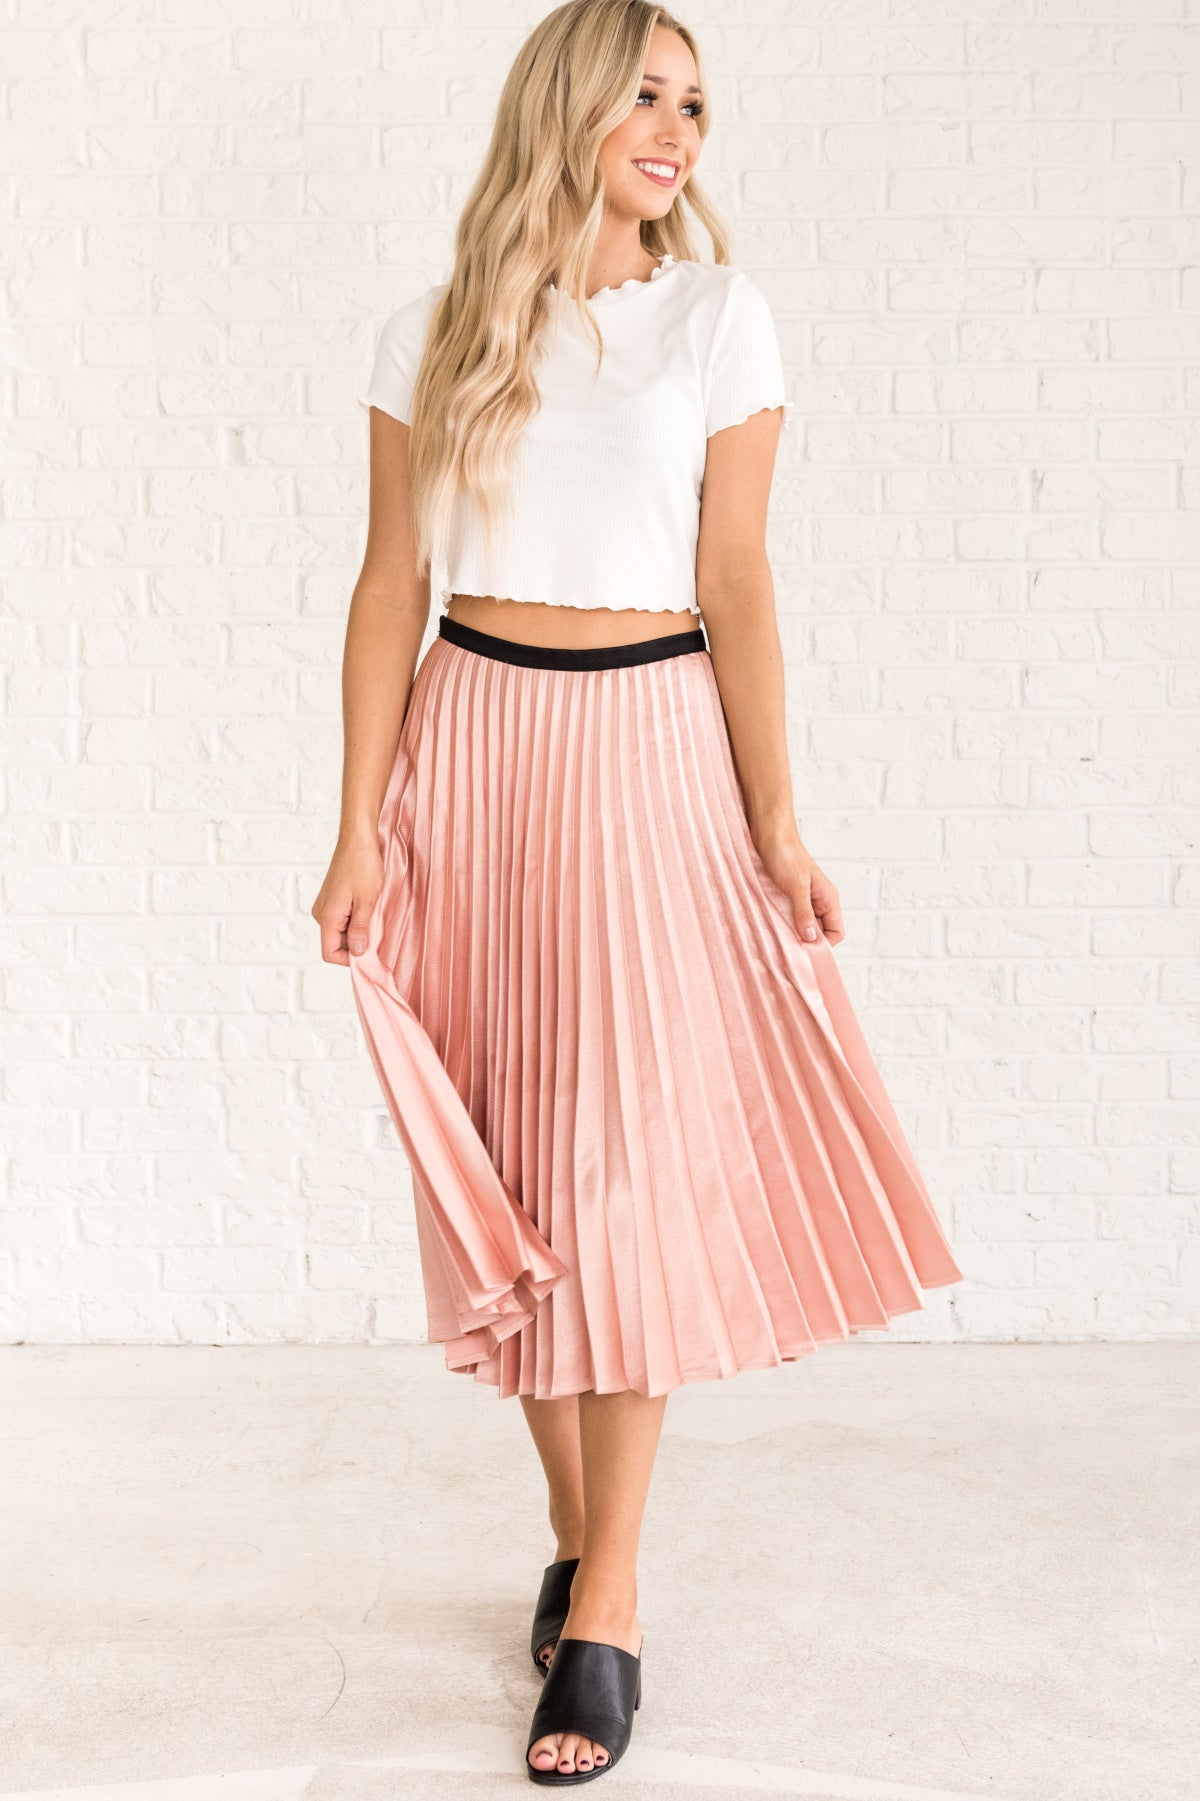 d87e4c1b97 Blush Rose Pink Cute Going Out Dance Pleated Midi Skirts for Women